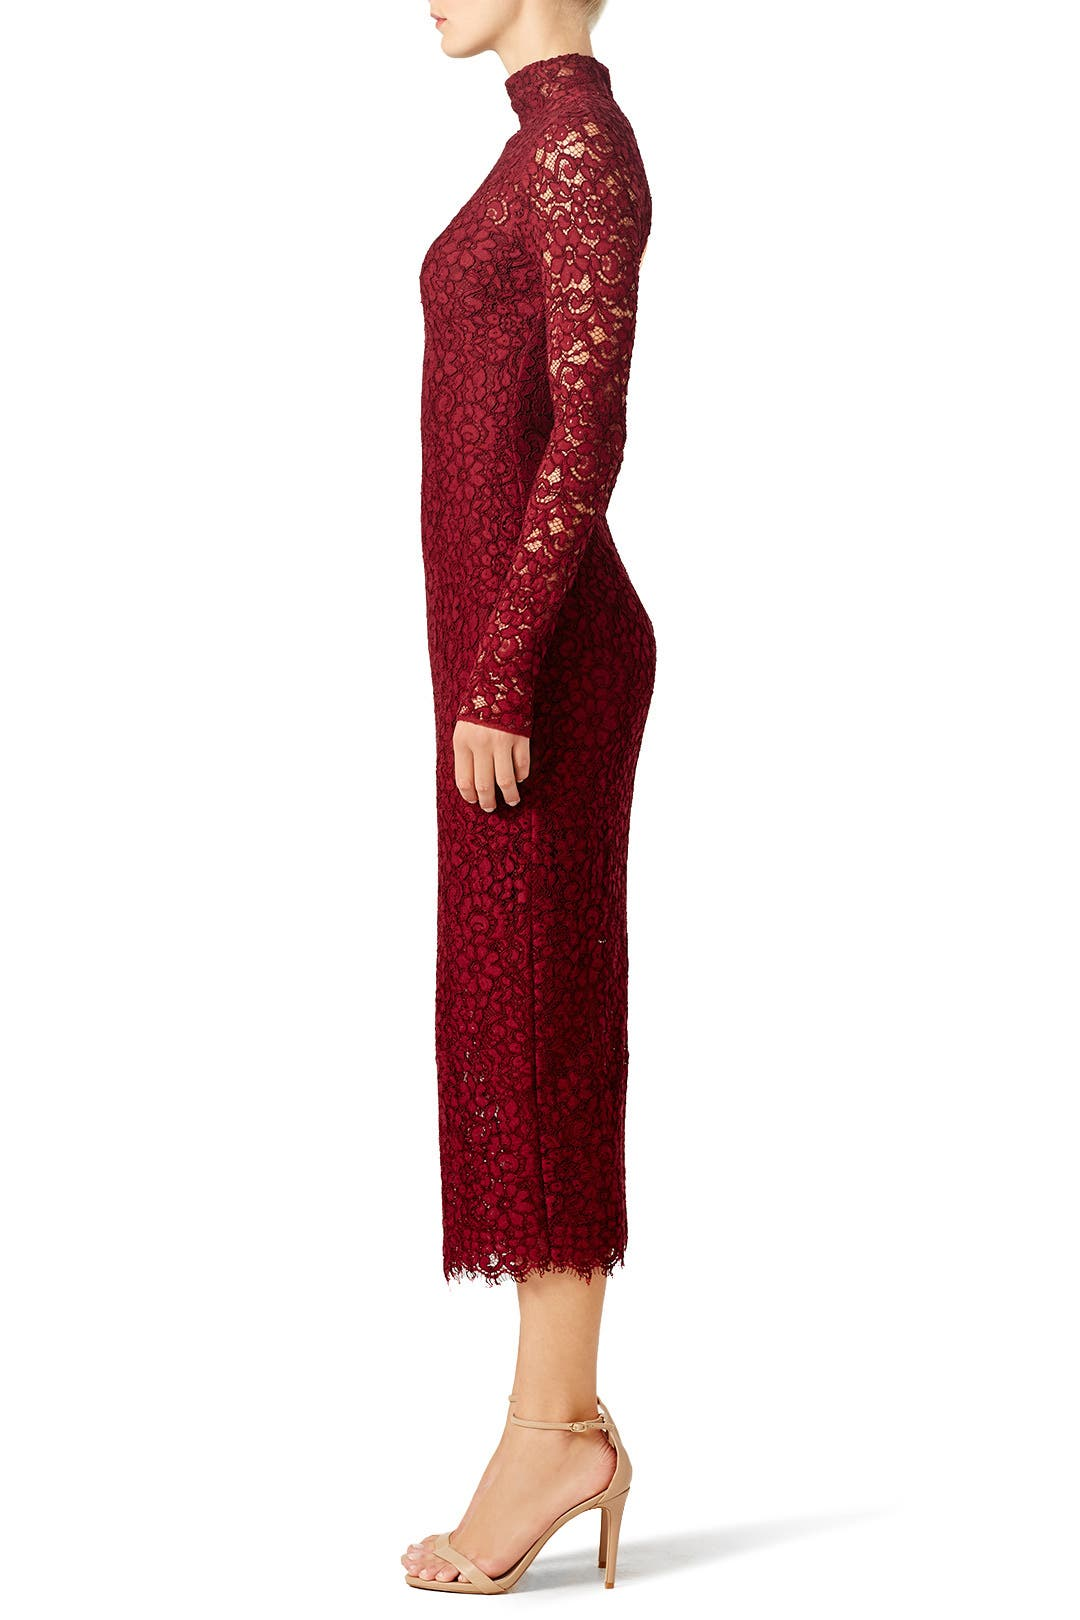 Dresses - ML Monique Lhuillier Great selection and prices for ...